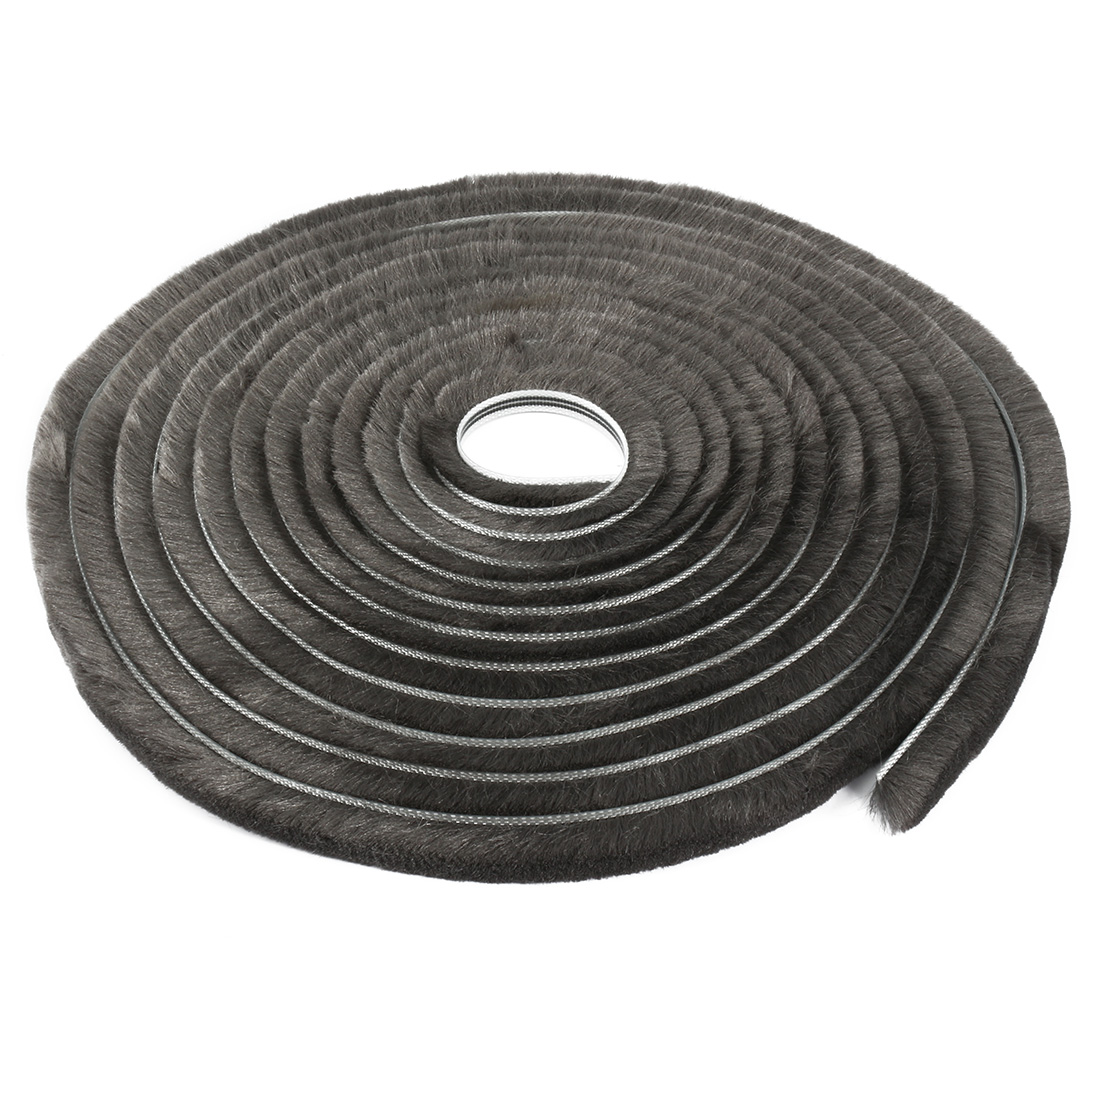 Window Weather Seal Strip 7/25 Inch Width x 15/32-Inch Thick x 16.4 Feet Length